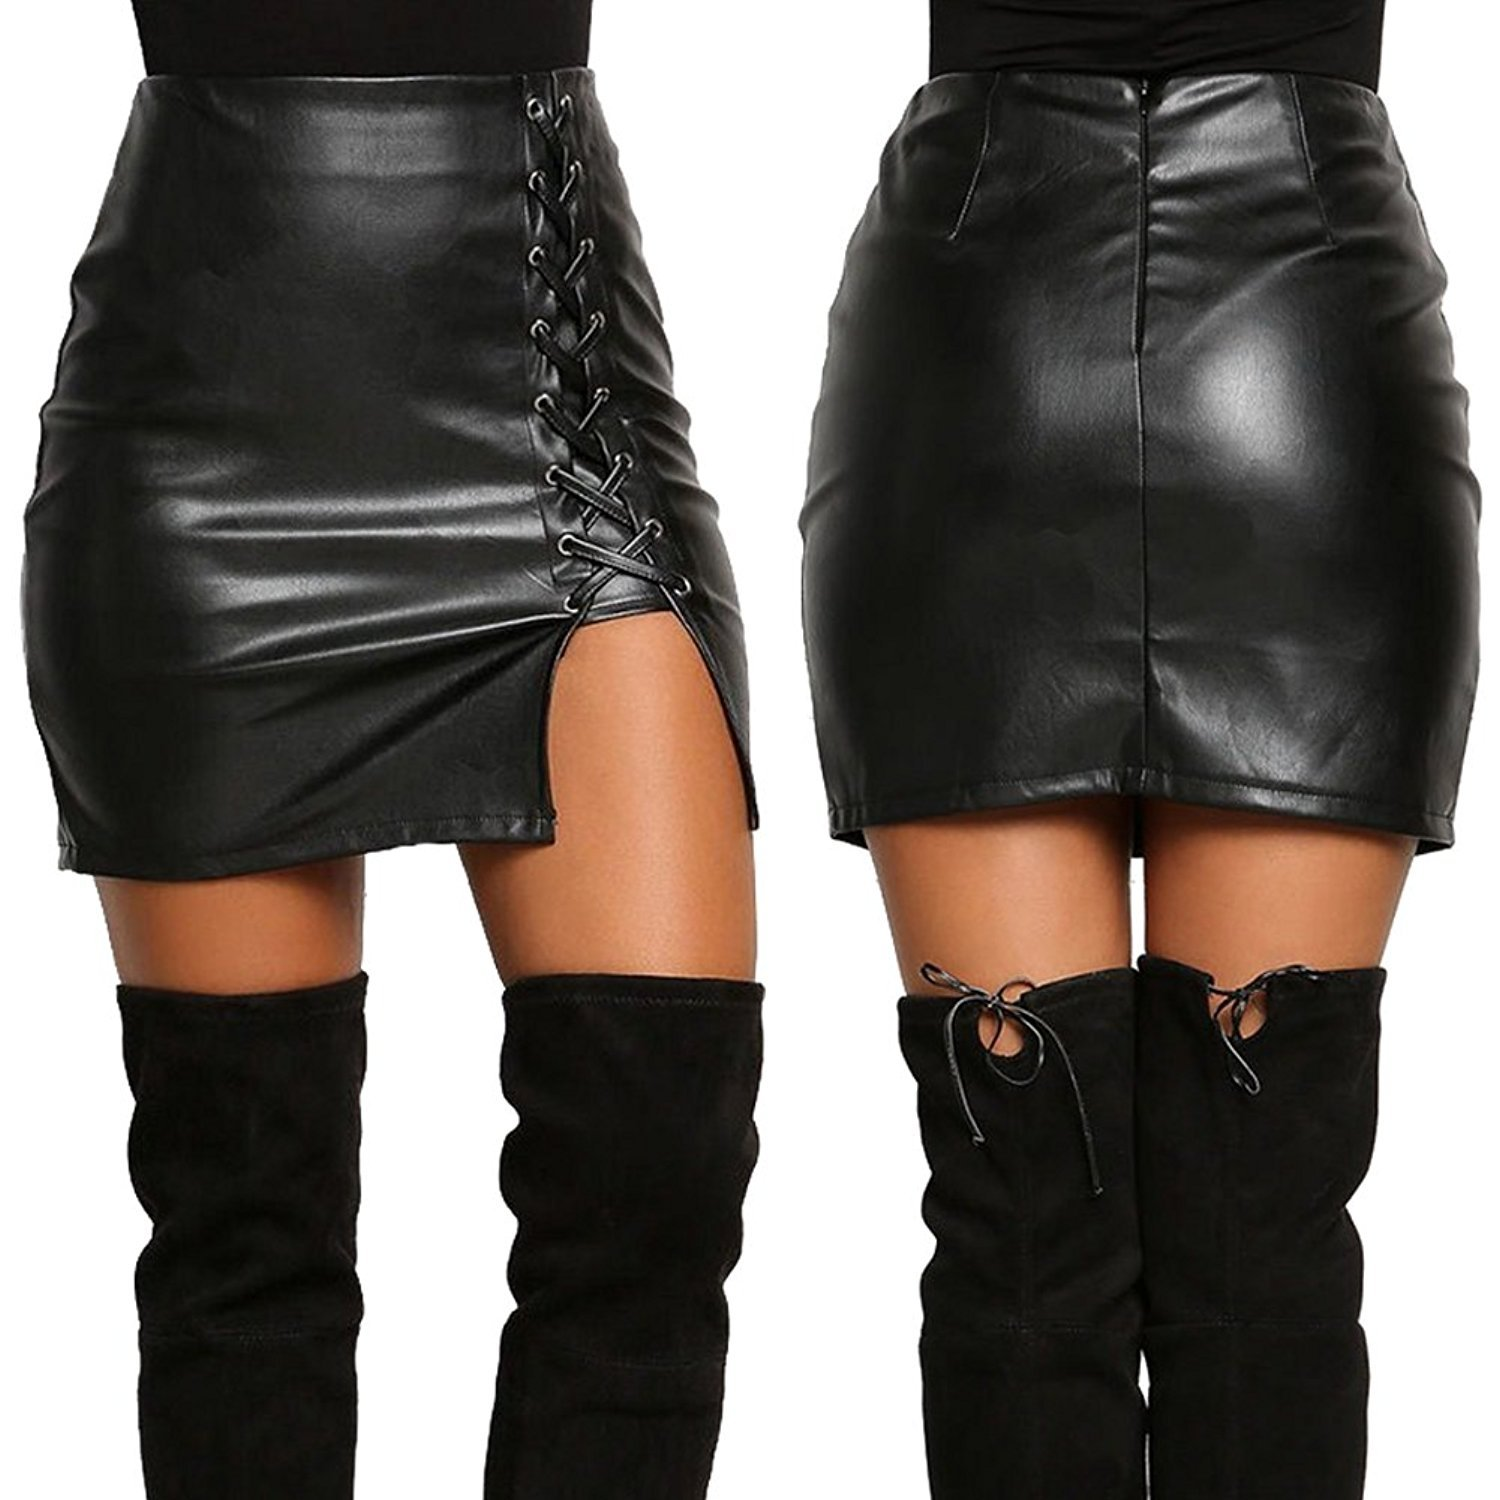 596767ce6 Lisli Women Sexy PU Leather Cut Out High Waist Stretch Bodycon Lace-Up Skirt  at Amazon Women's Clothing store: